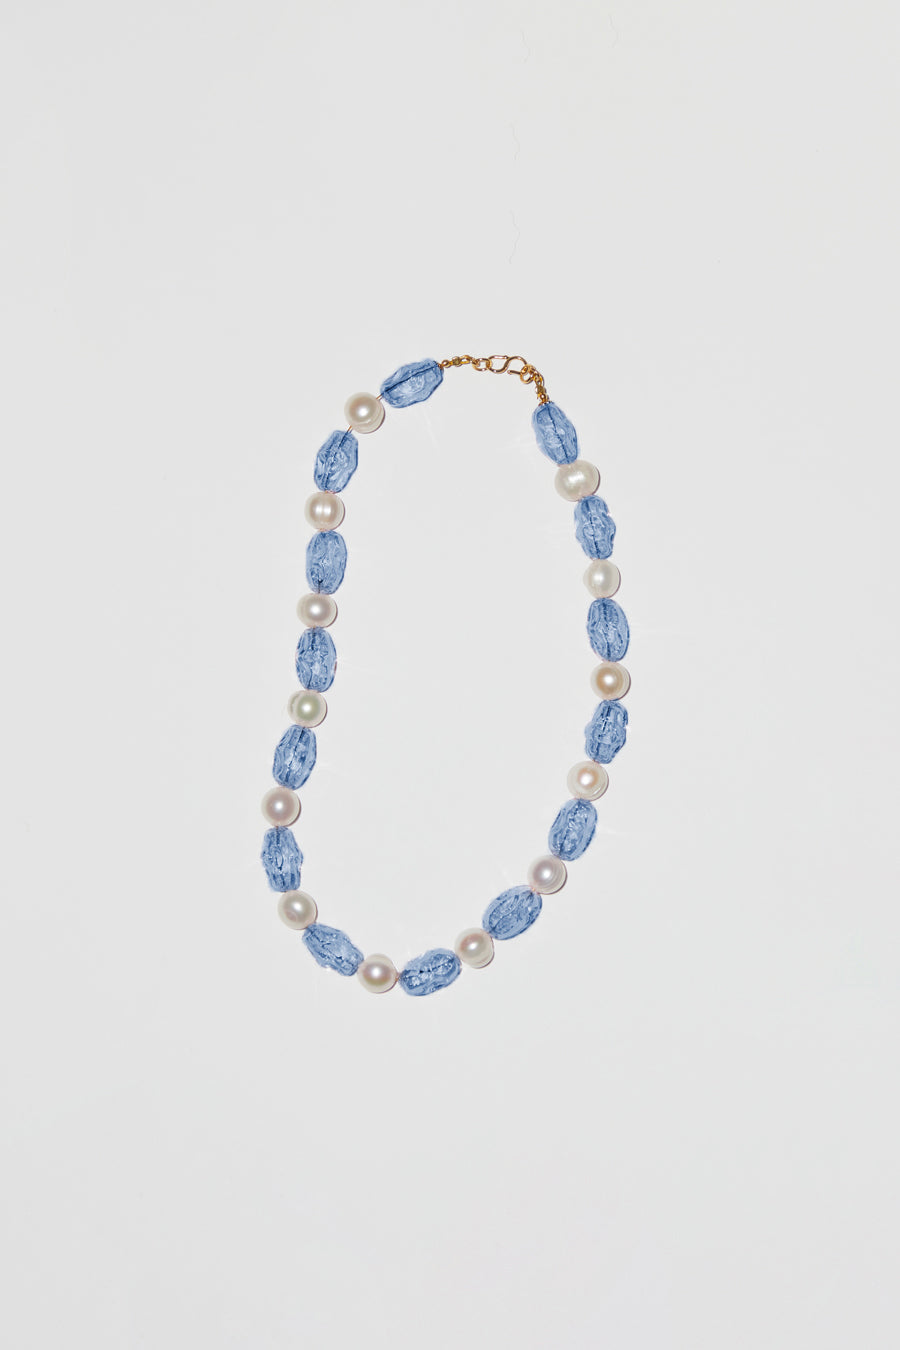 Ninfa Rio Necklace in Blue